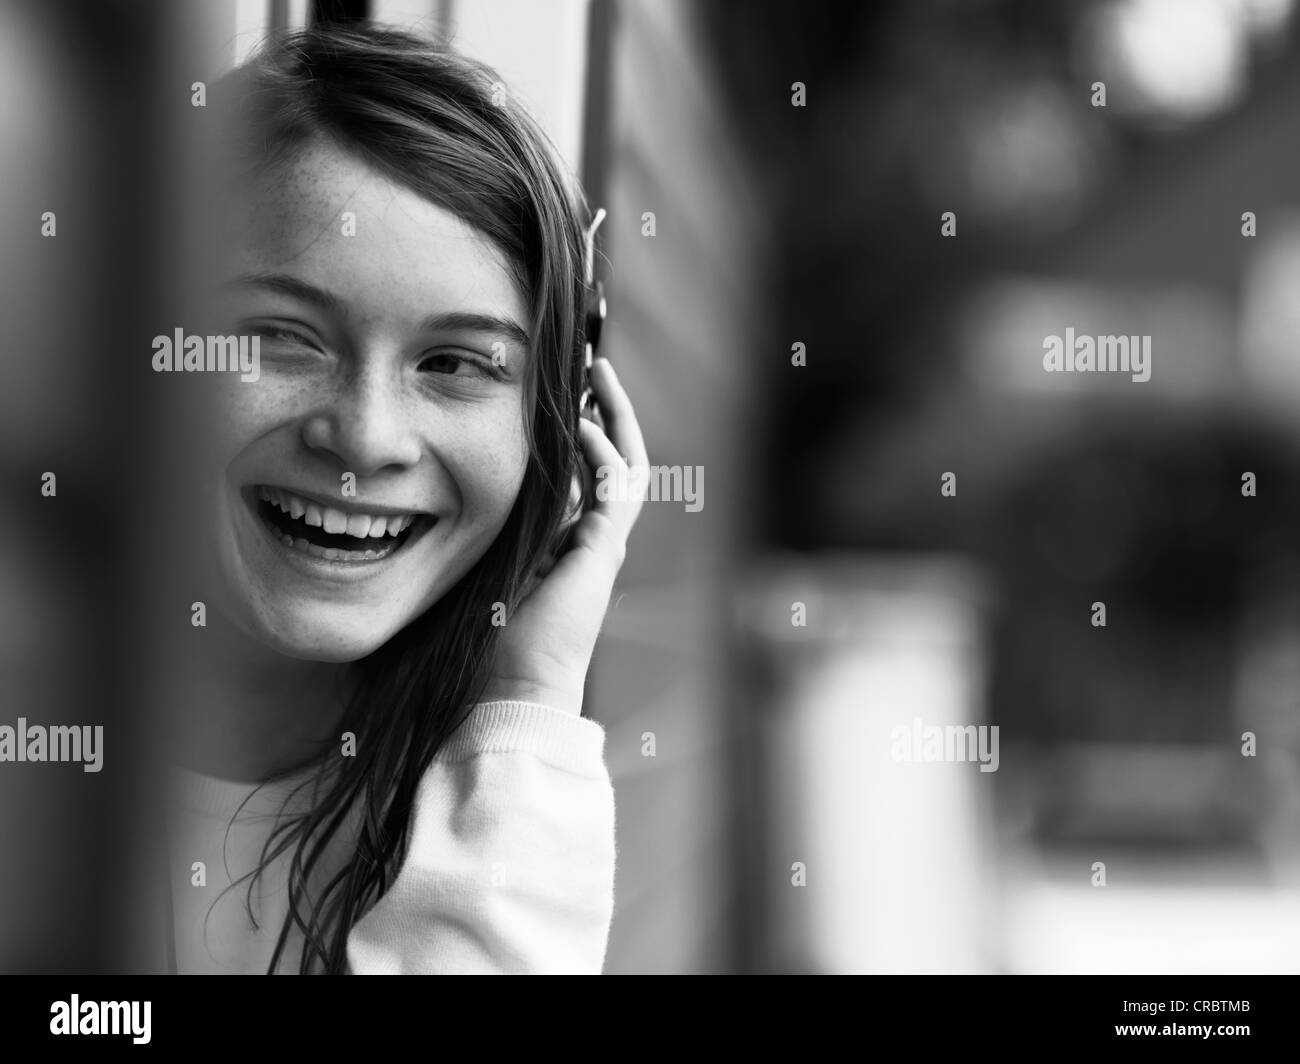 Smiling girl talking on cell phone - Stock Image